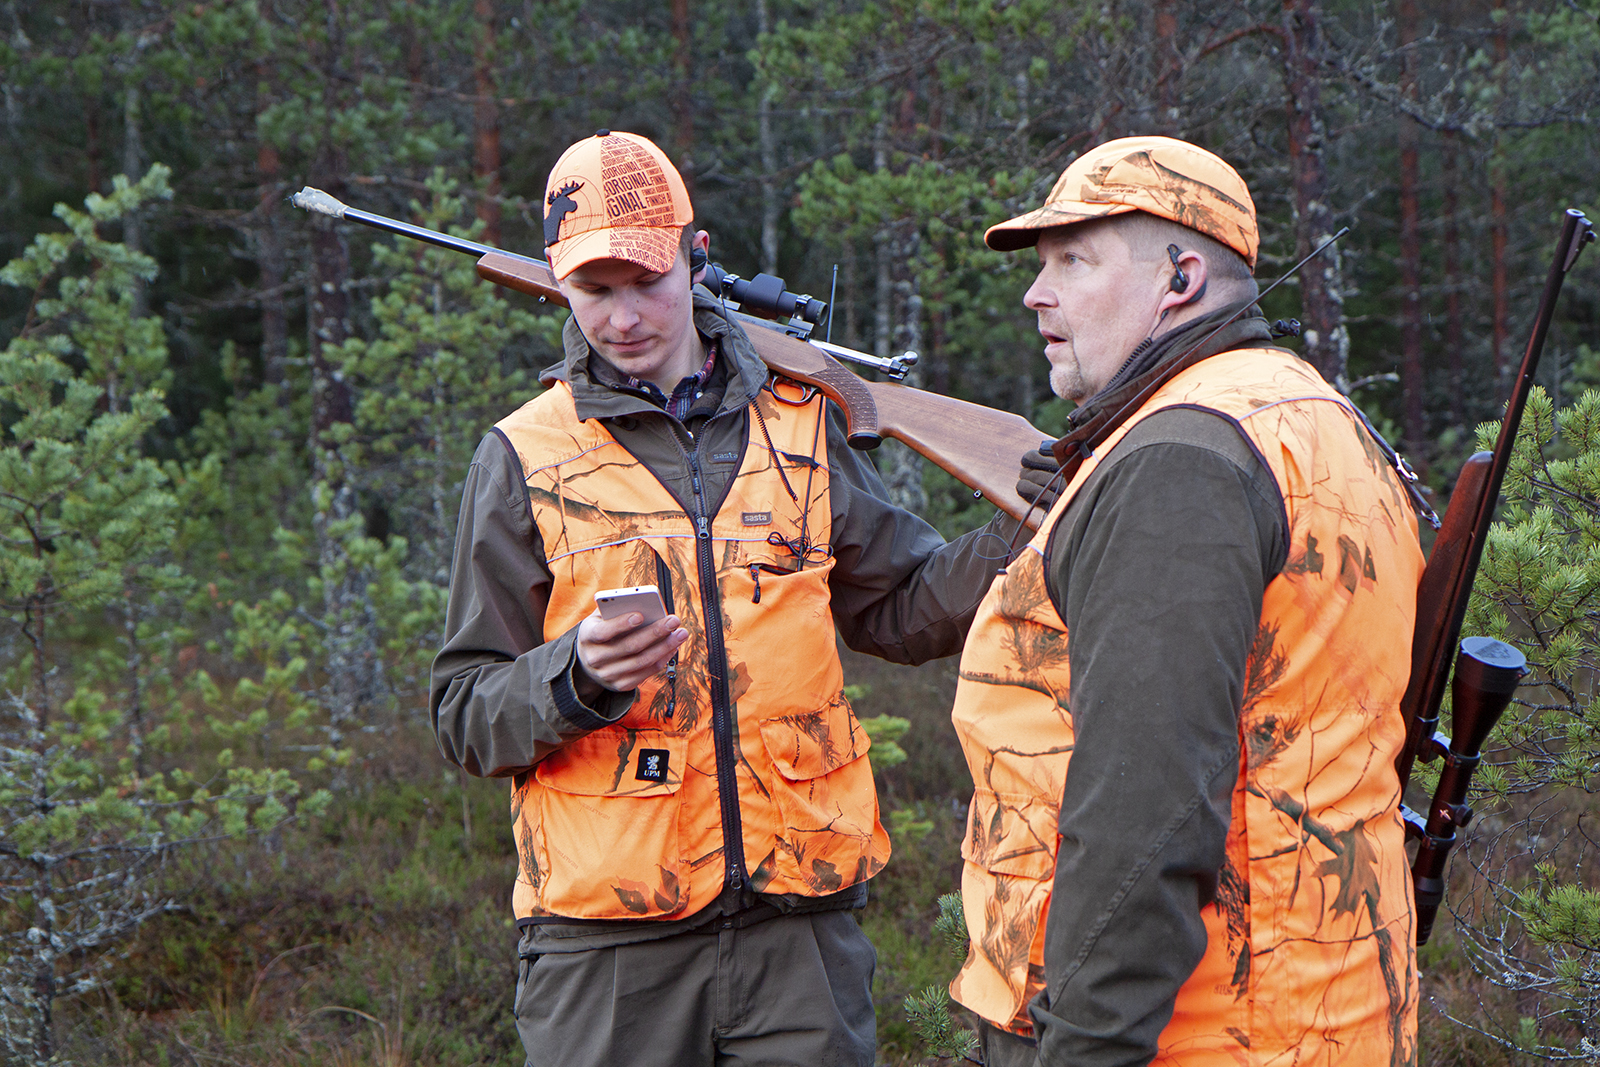 When Perttu and Juha-Matti Valonen go into the woods, what they never leave behind are binoculars. Orange hi-vis clothing is mandatory when hunting. Photo: Anna Kauppi